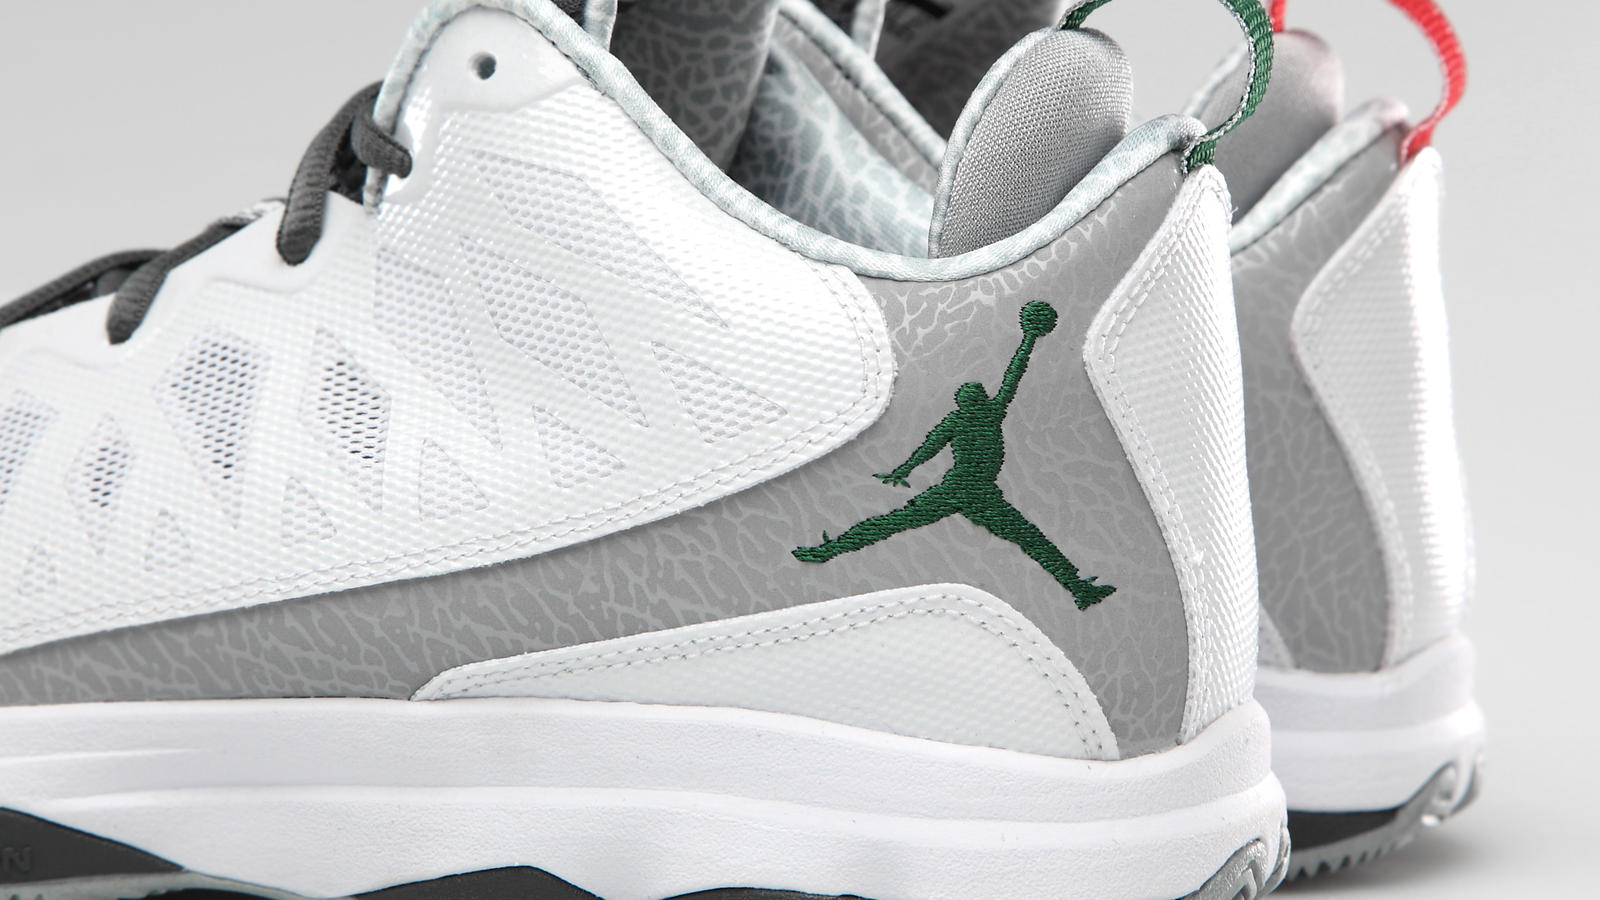 new style d022f 141c4 The Jordan Brand s holiday spirit will be seen on full display as its  athletes will where shoes inspired by a